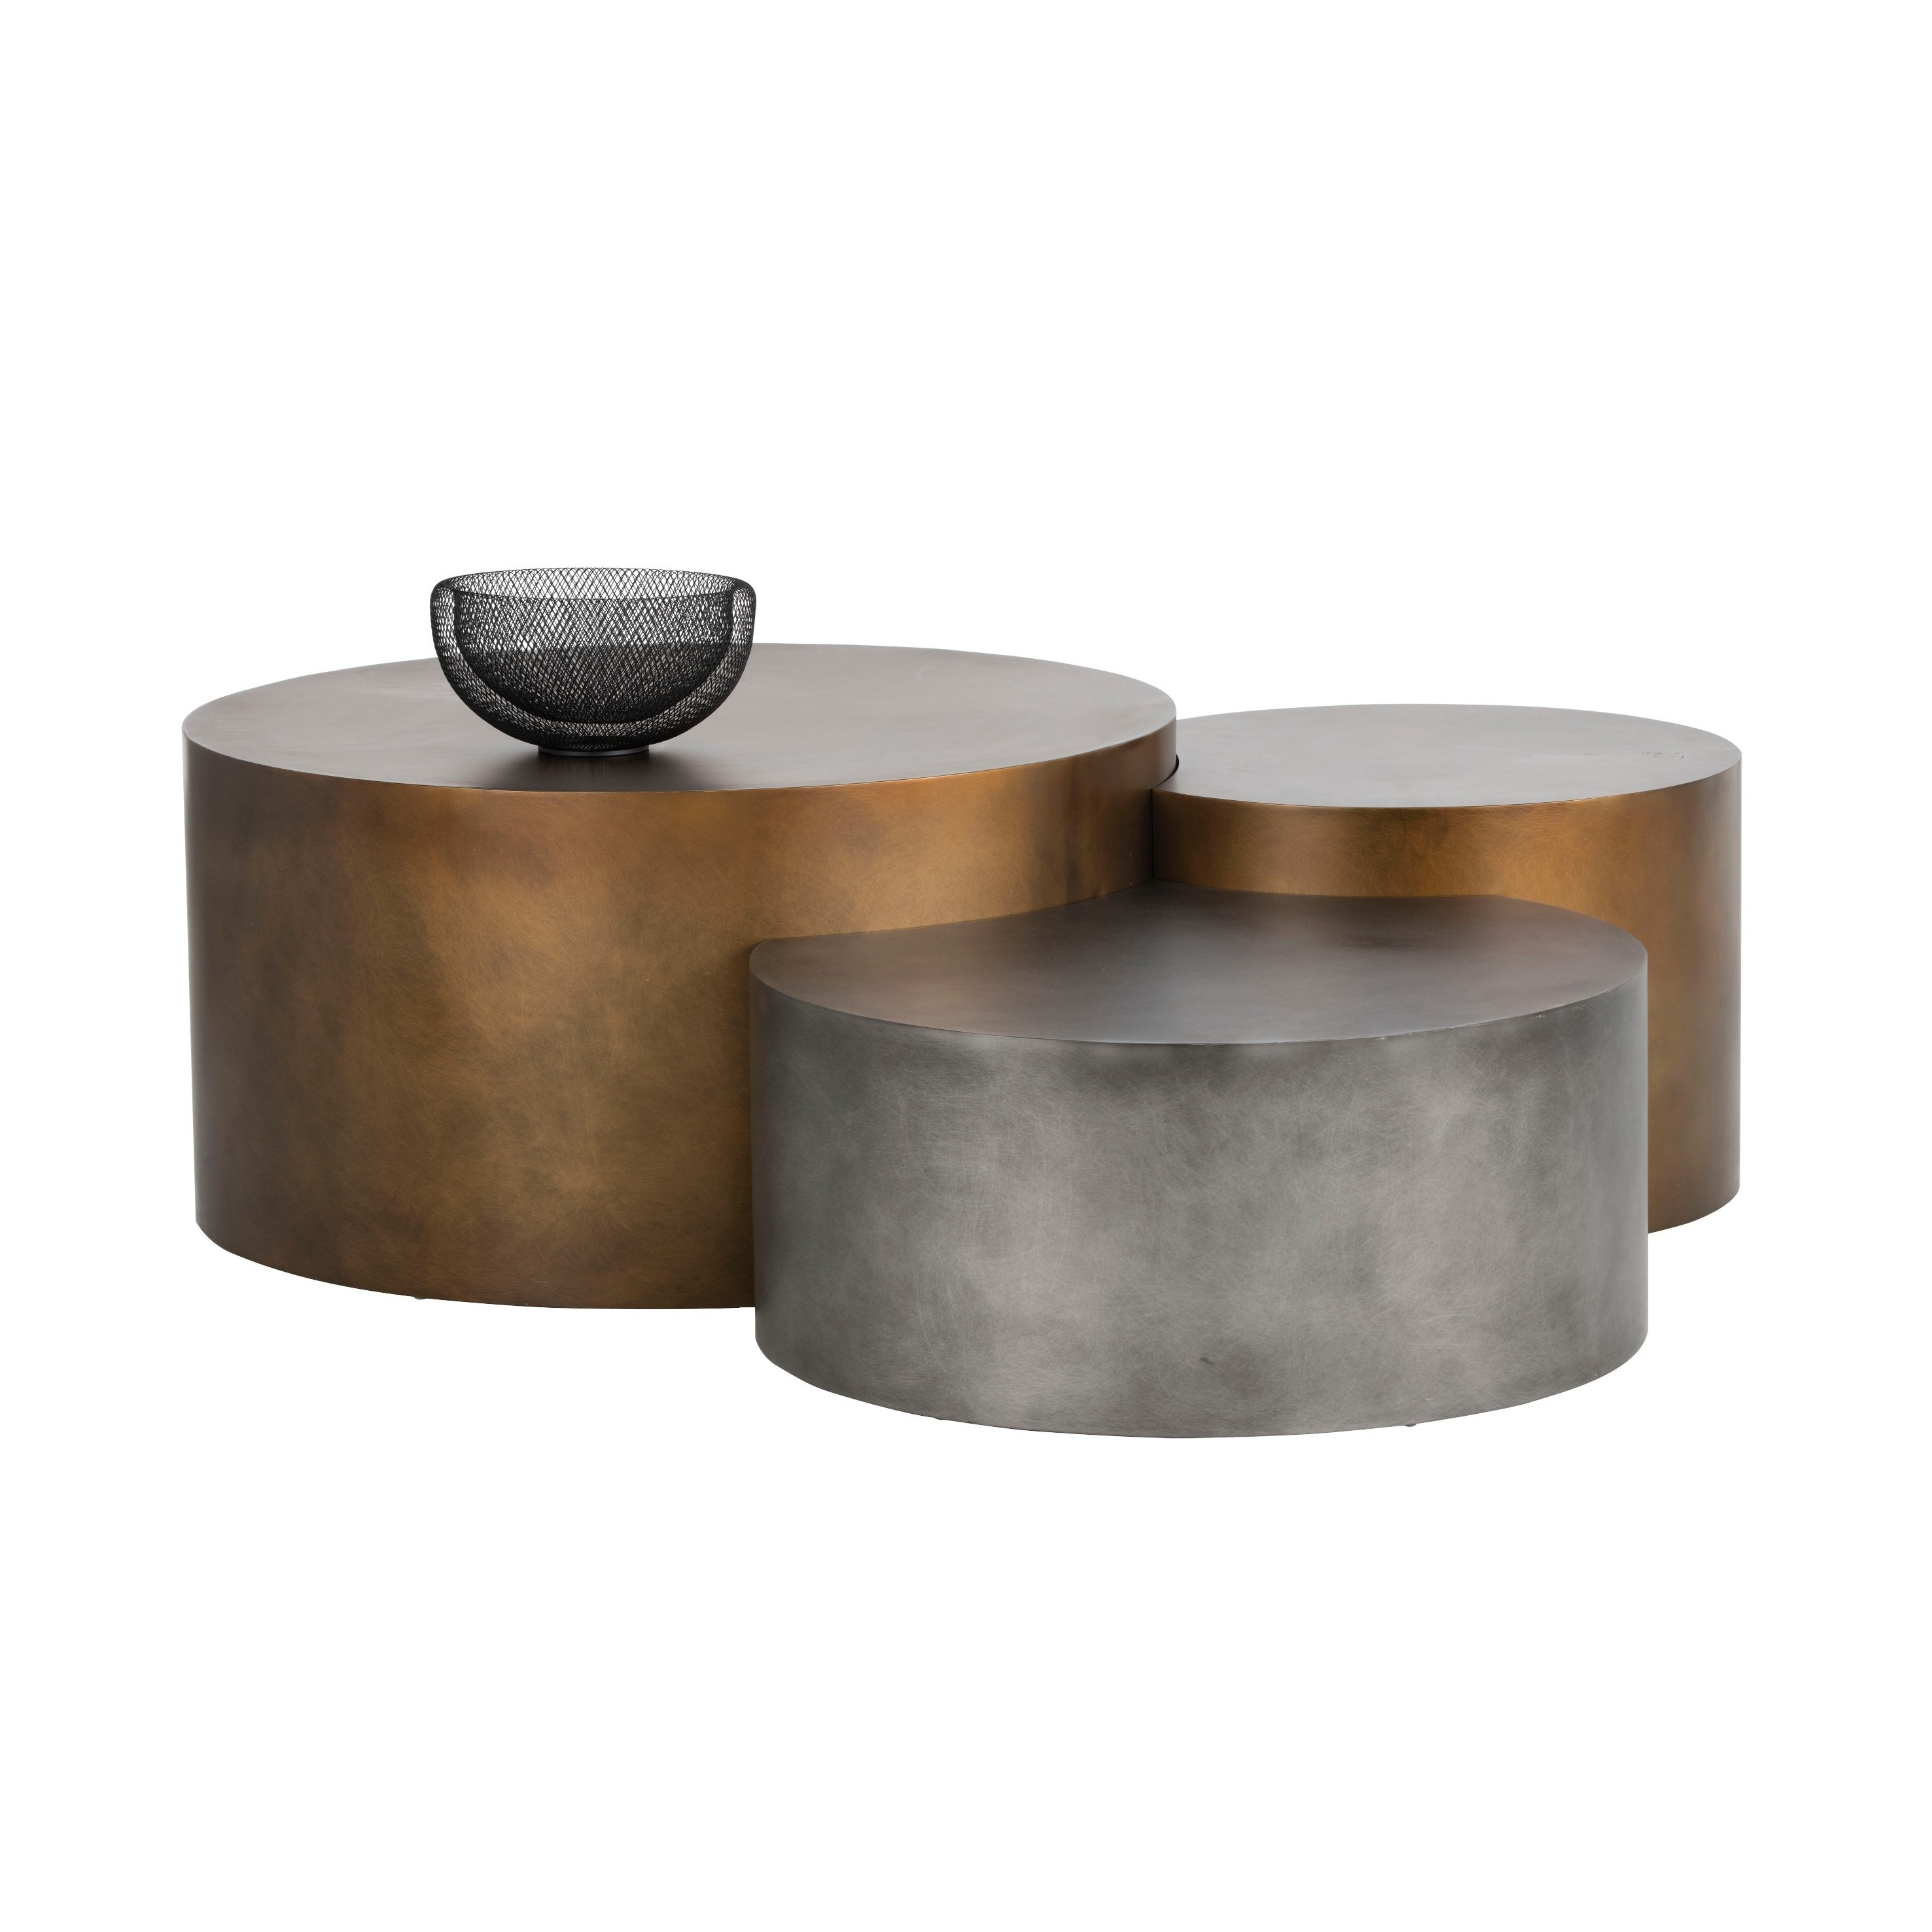 Ikon Neo Br Round Coffee Tables Set Of 3 Free Shipping Today 19875719